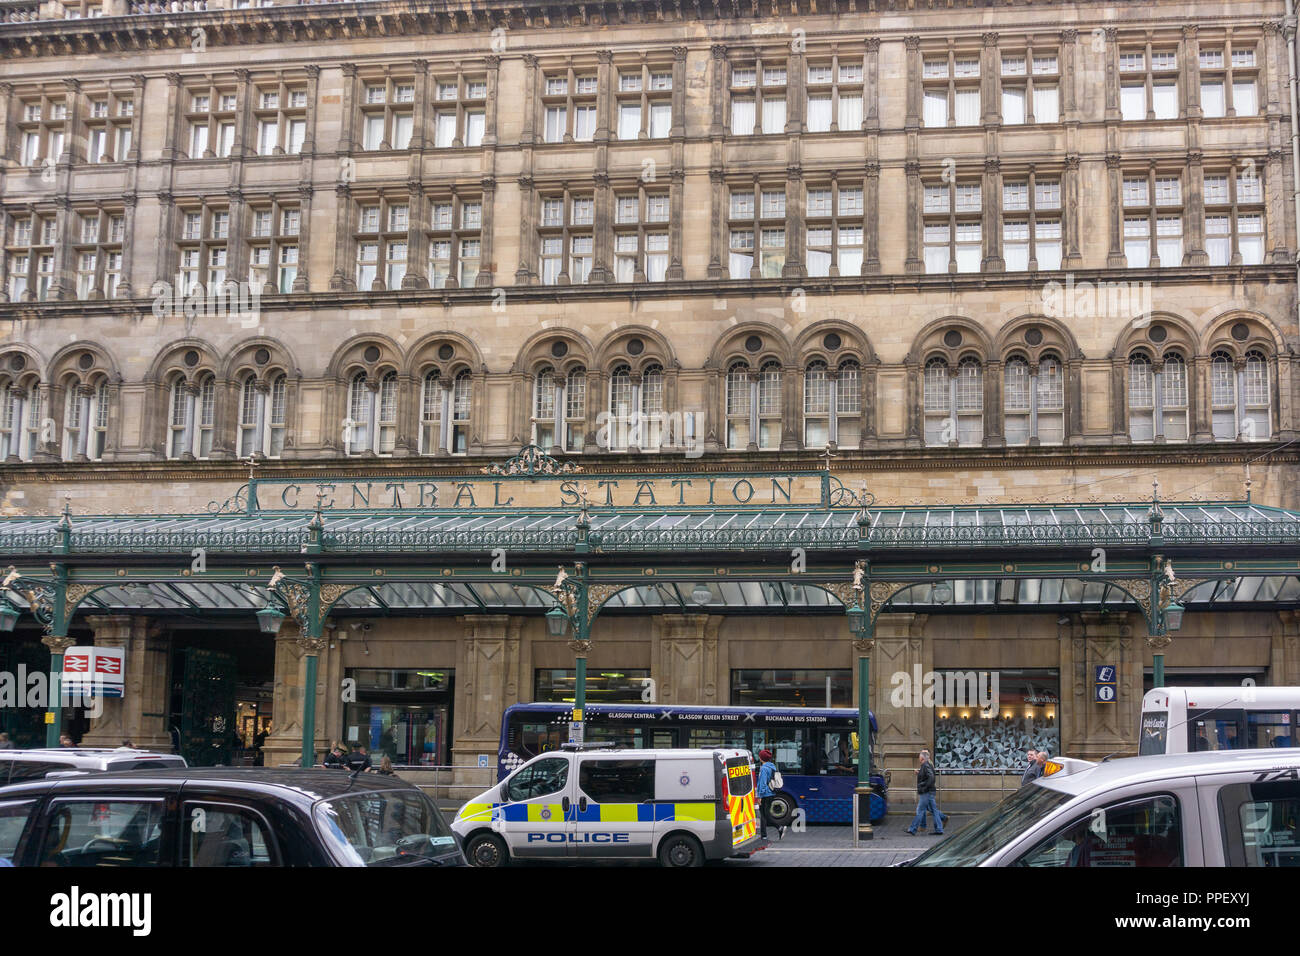 Glasgow City, Scotland, UK - September 22, 2018: The front entrance to Glasgow central station busy with pedestrians and traffic. - Stock Image